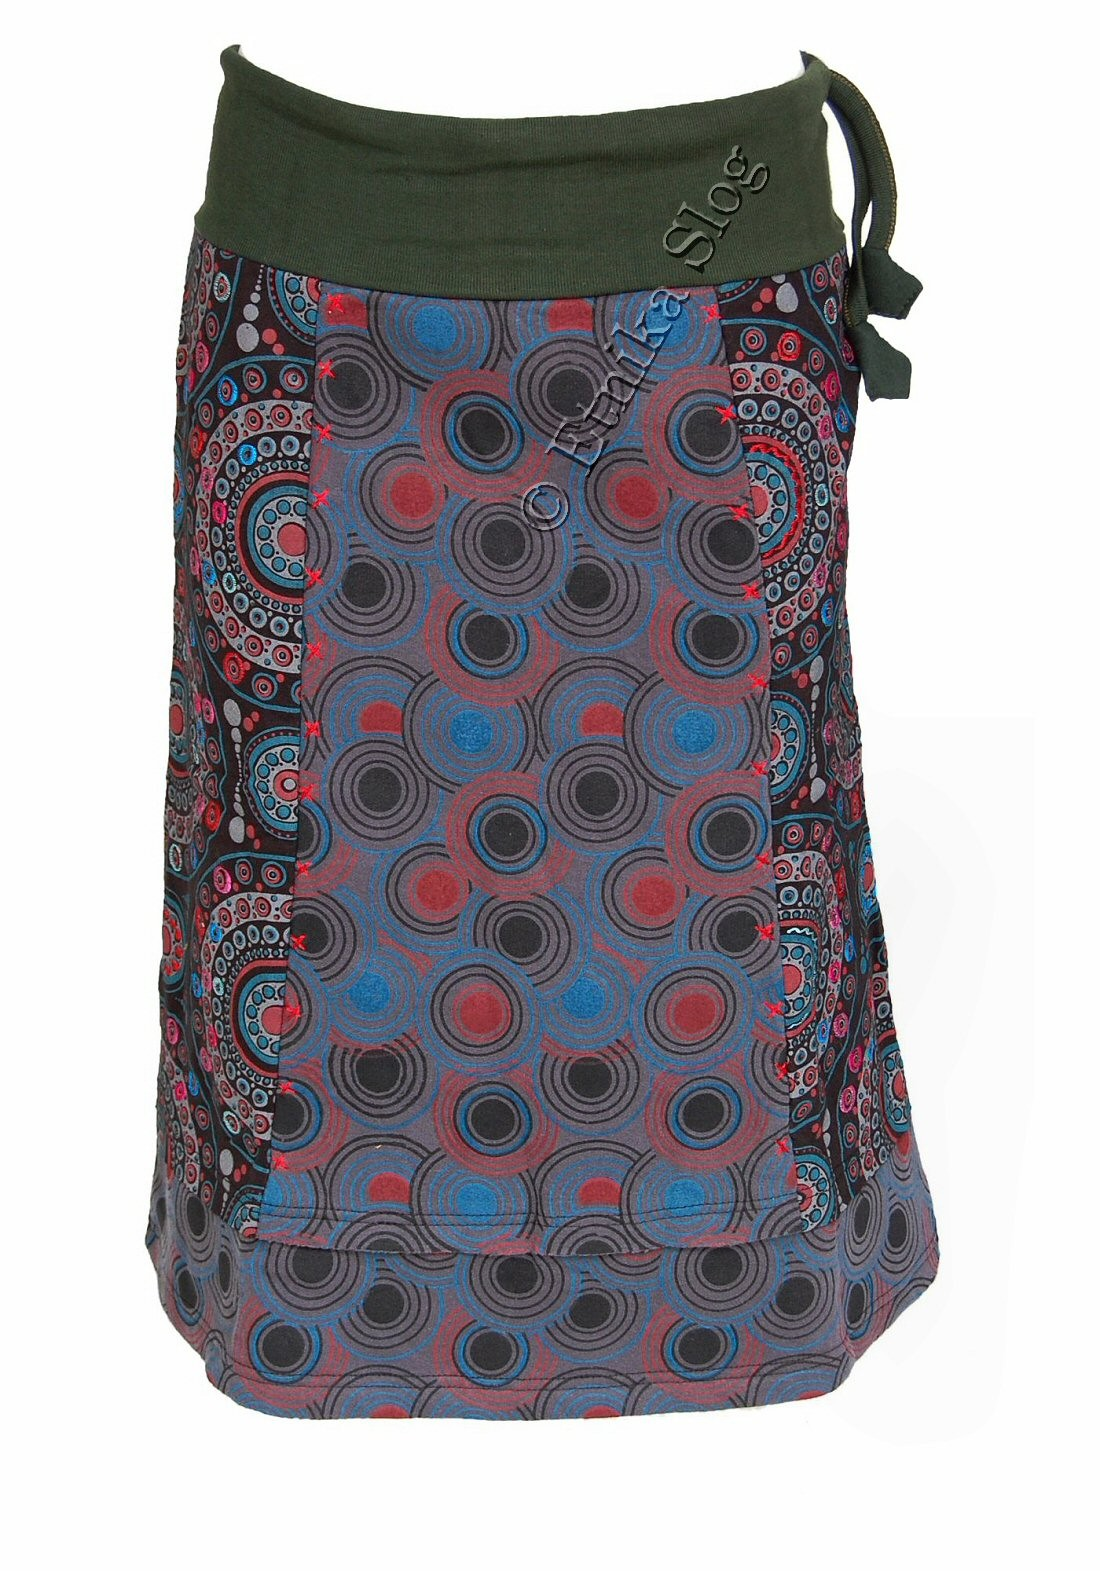 GONNE AUTUNNO / INVERNO AB-WWG05 - Oriente Import S.r.l.